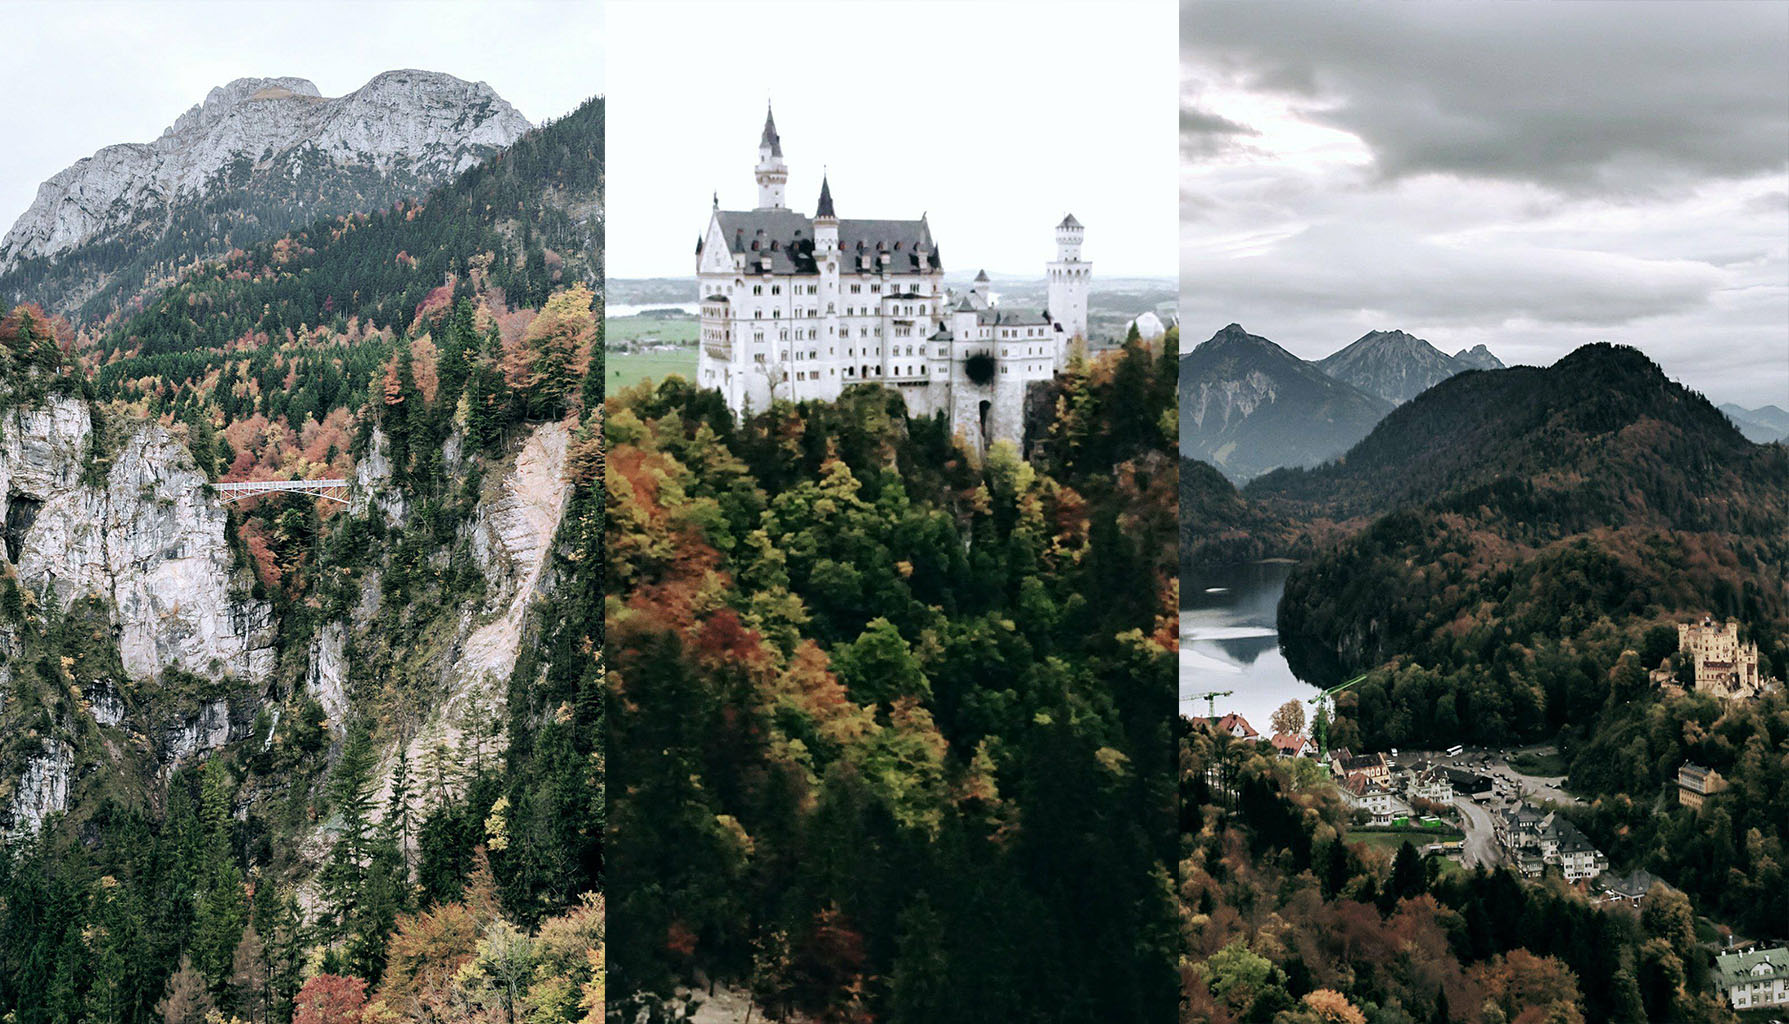 I'll be the first to admit I love a nature escape any day. Discovering the  Neuschwanstein Castle made for the perfect day trip with EPIC views.A great balance to city life just less than a two hour drive from Munich.